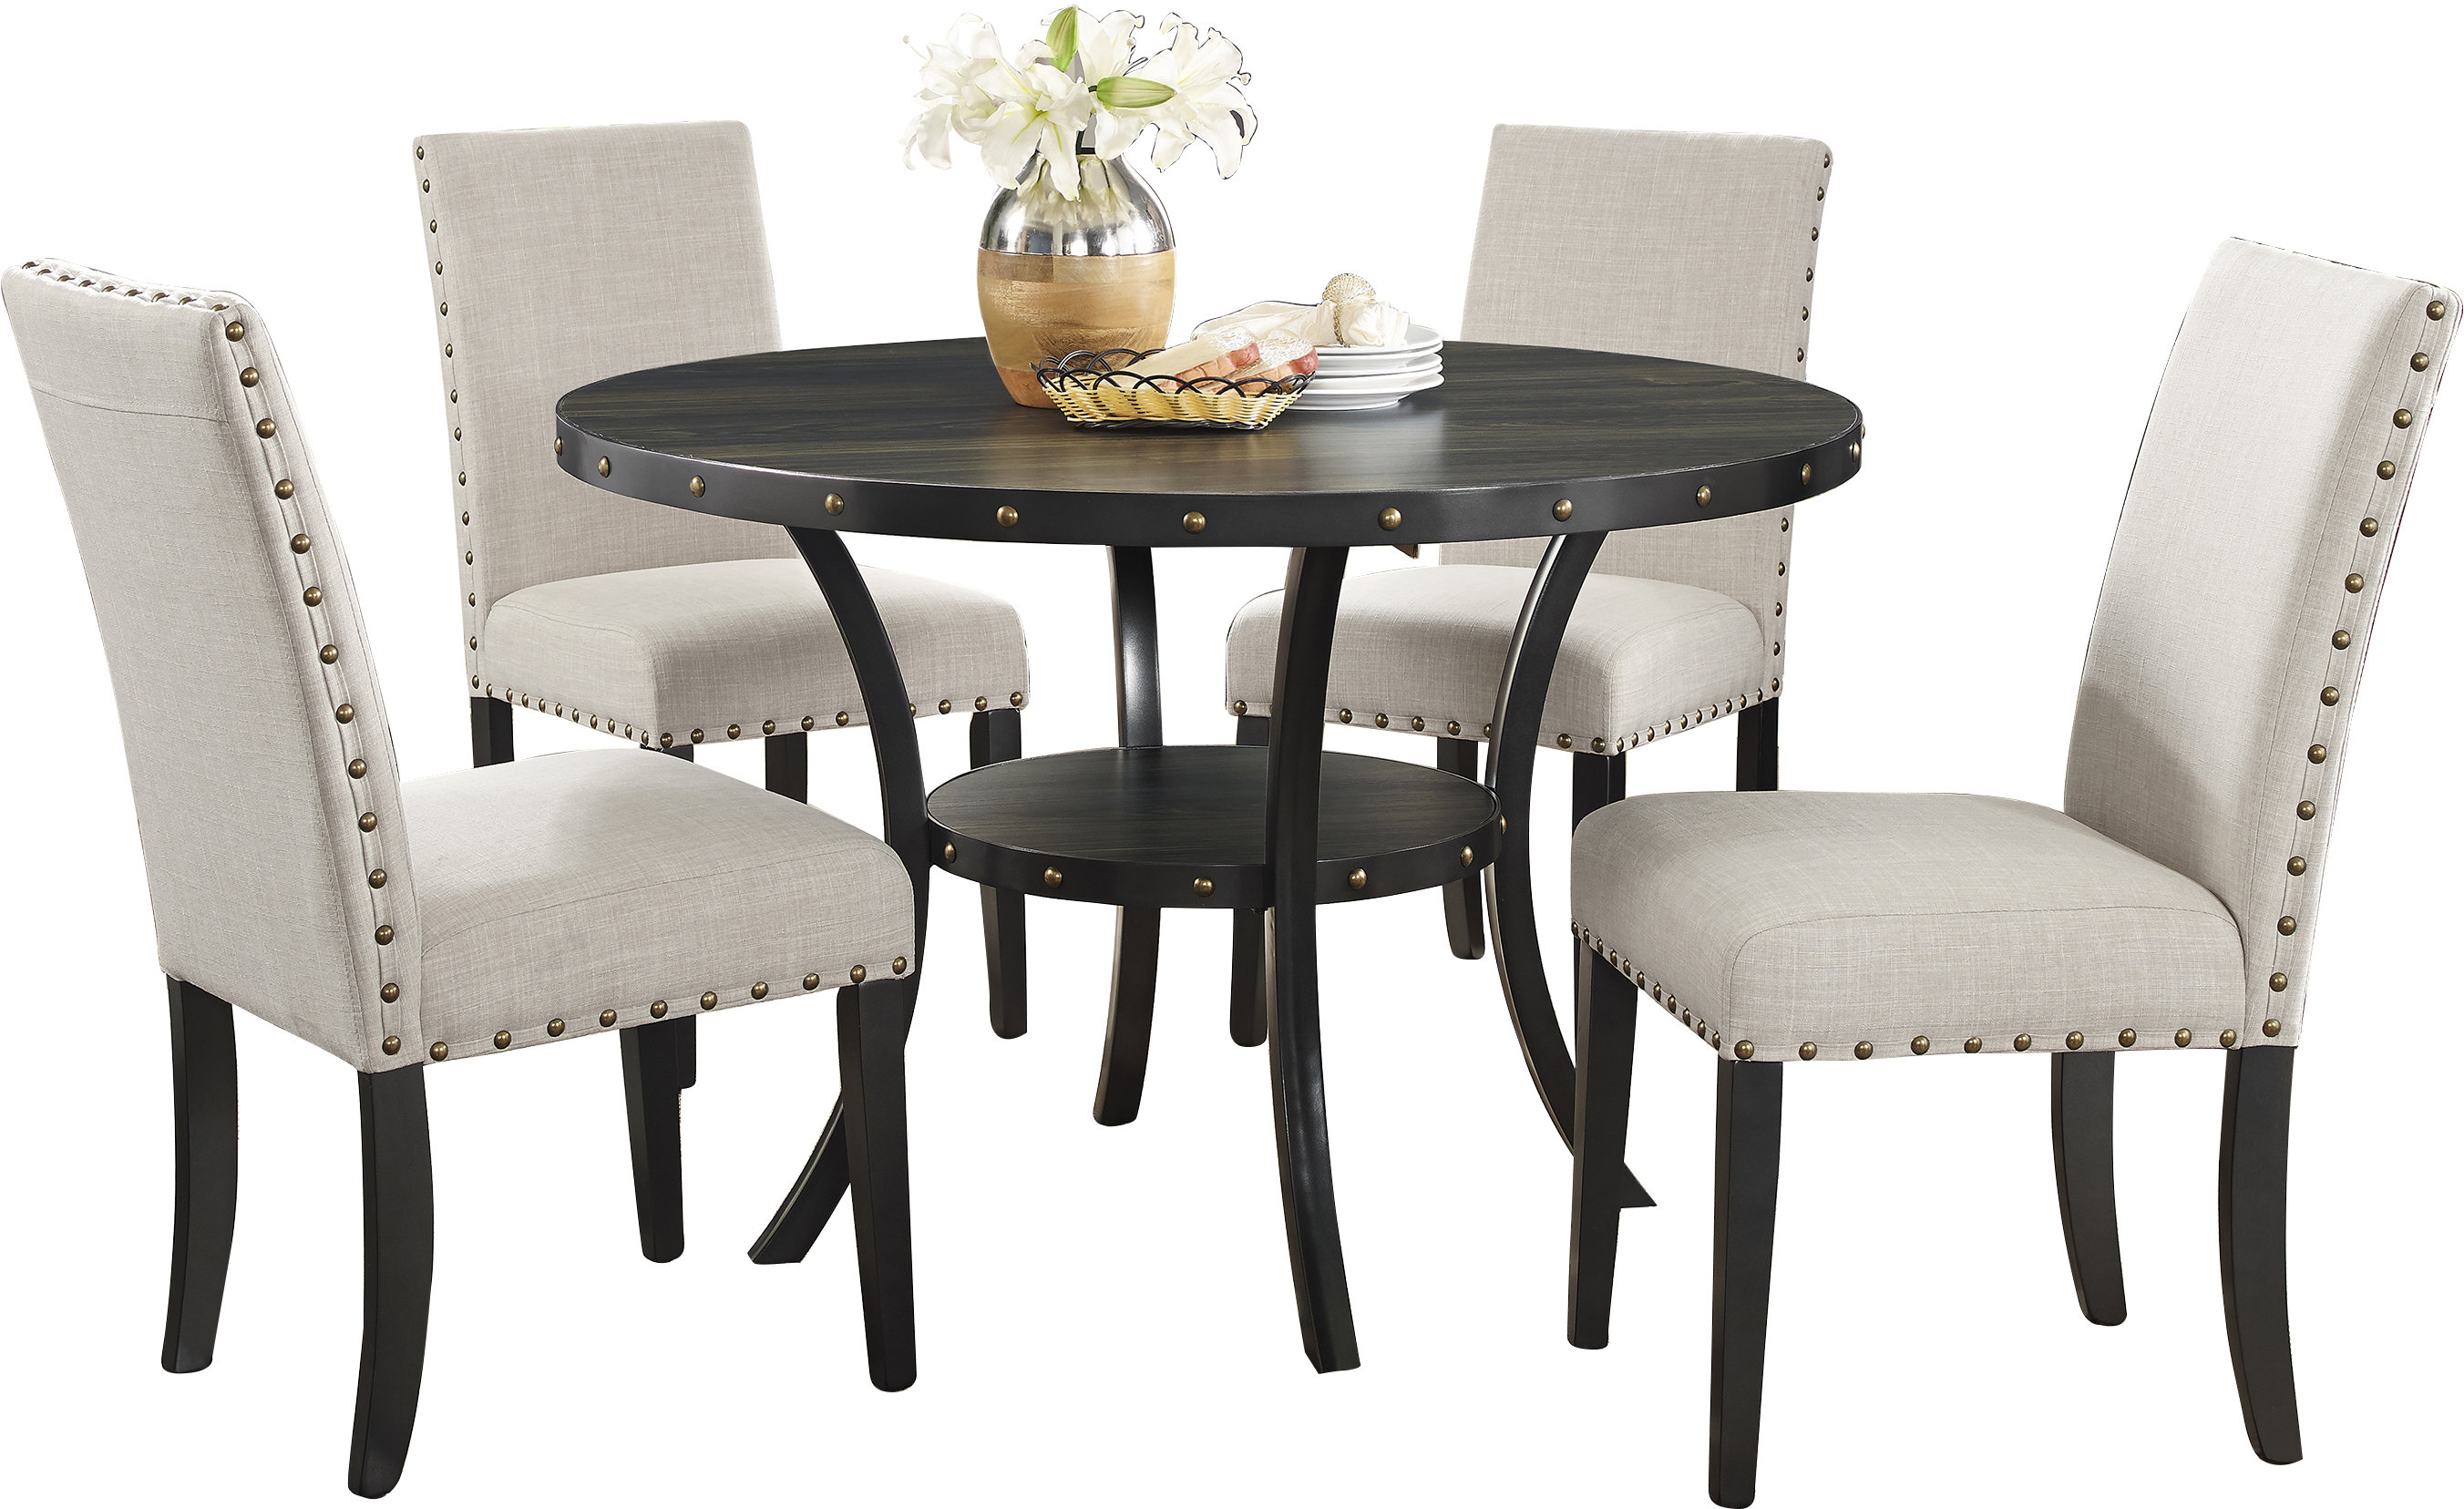 Pattonsburg 5 Piece Dining Sets Inside Most Popular Amy 5 Piece Dining Set (View 24 of 25)